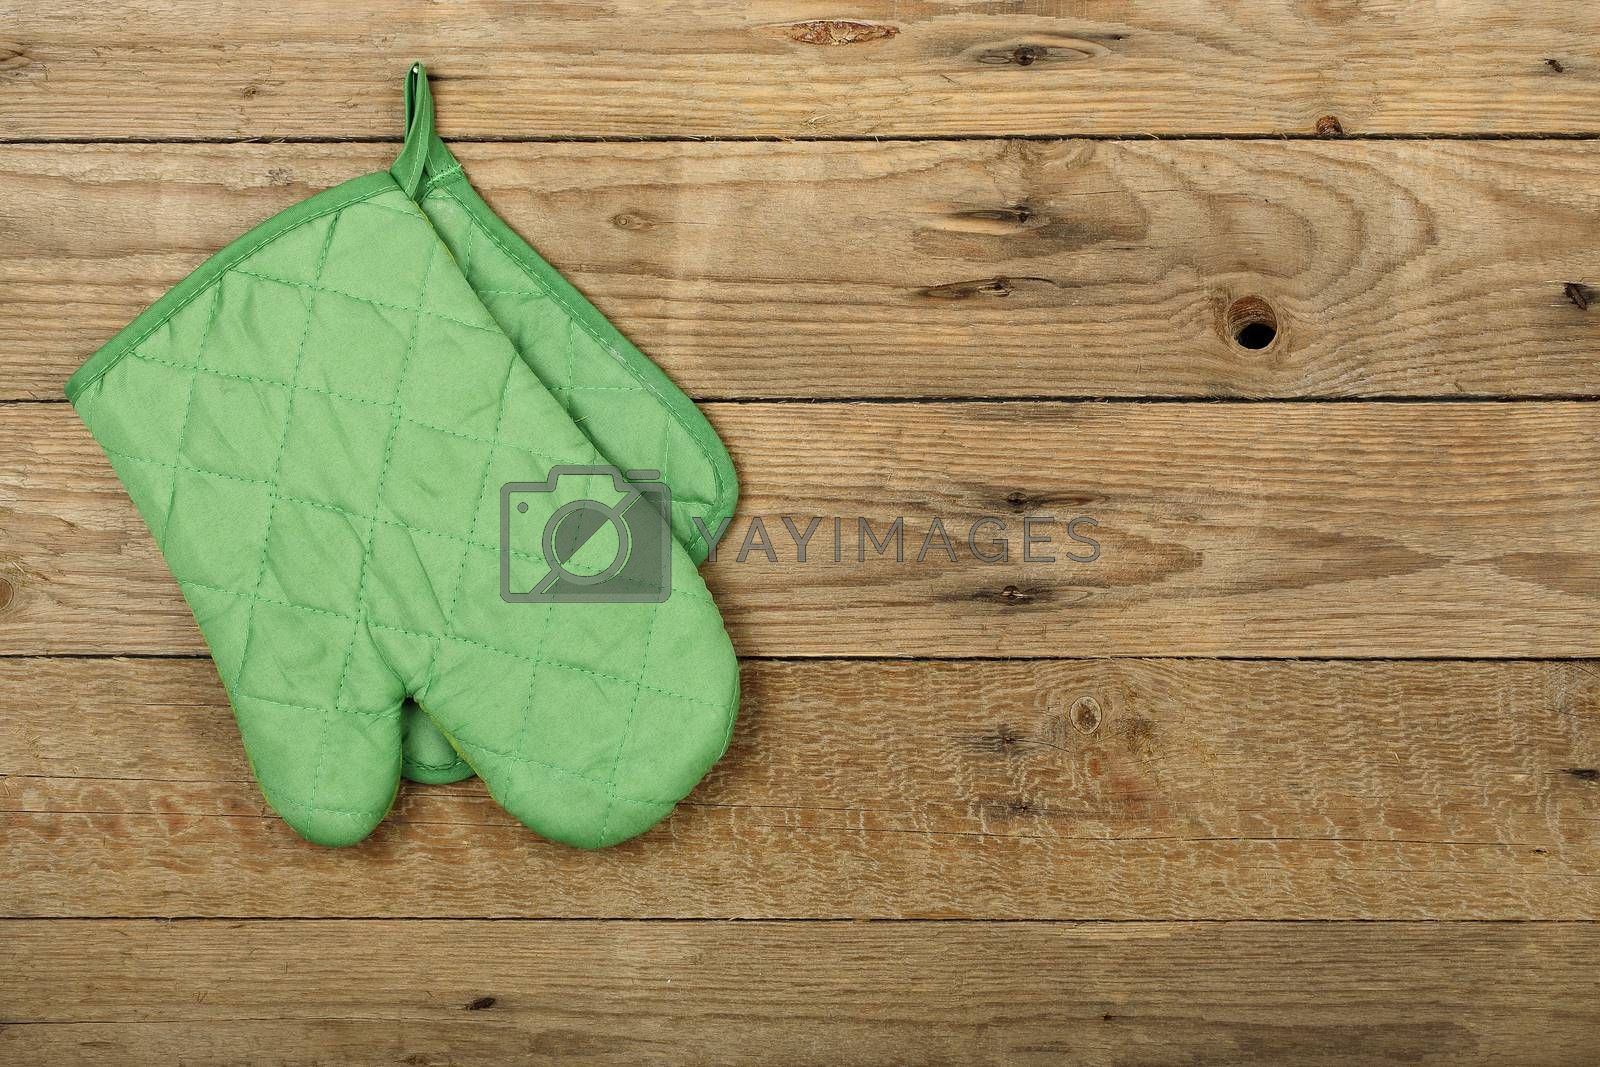 kitchen glove hung on old wooden surface